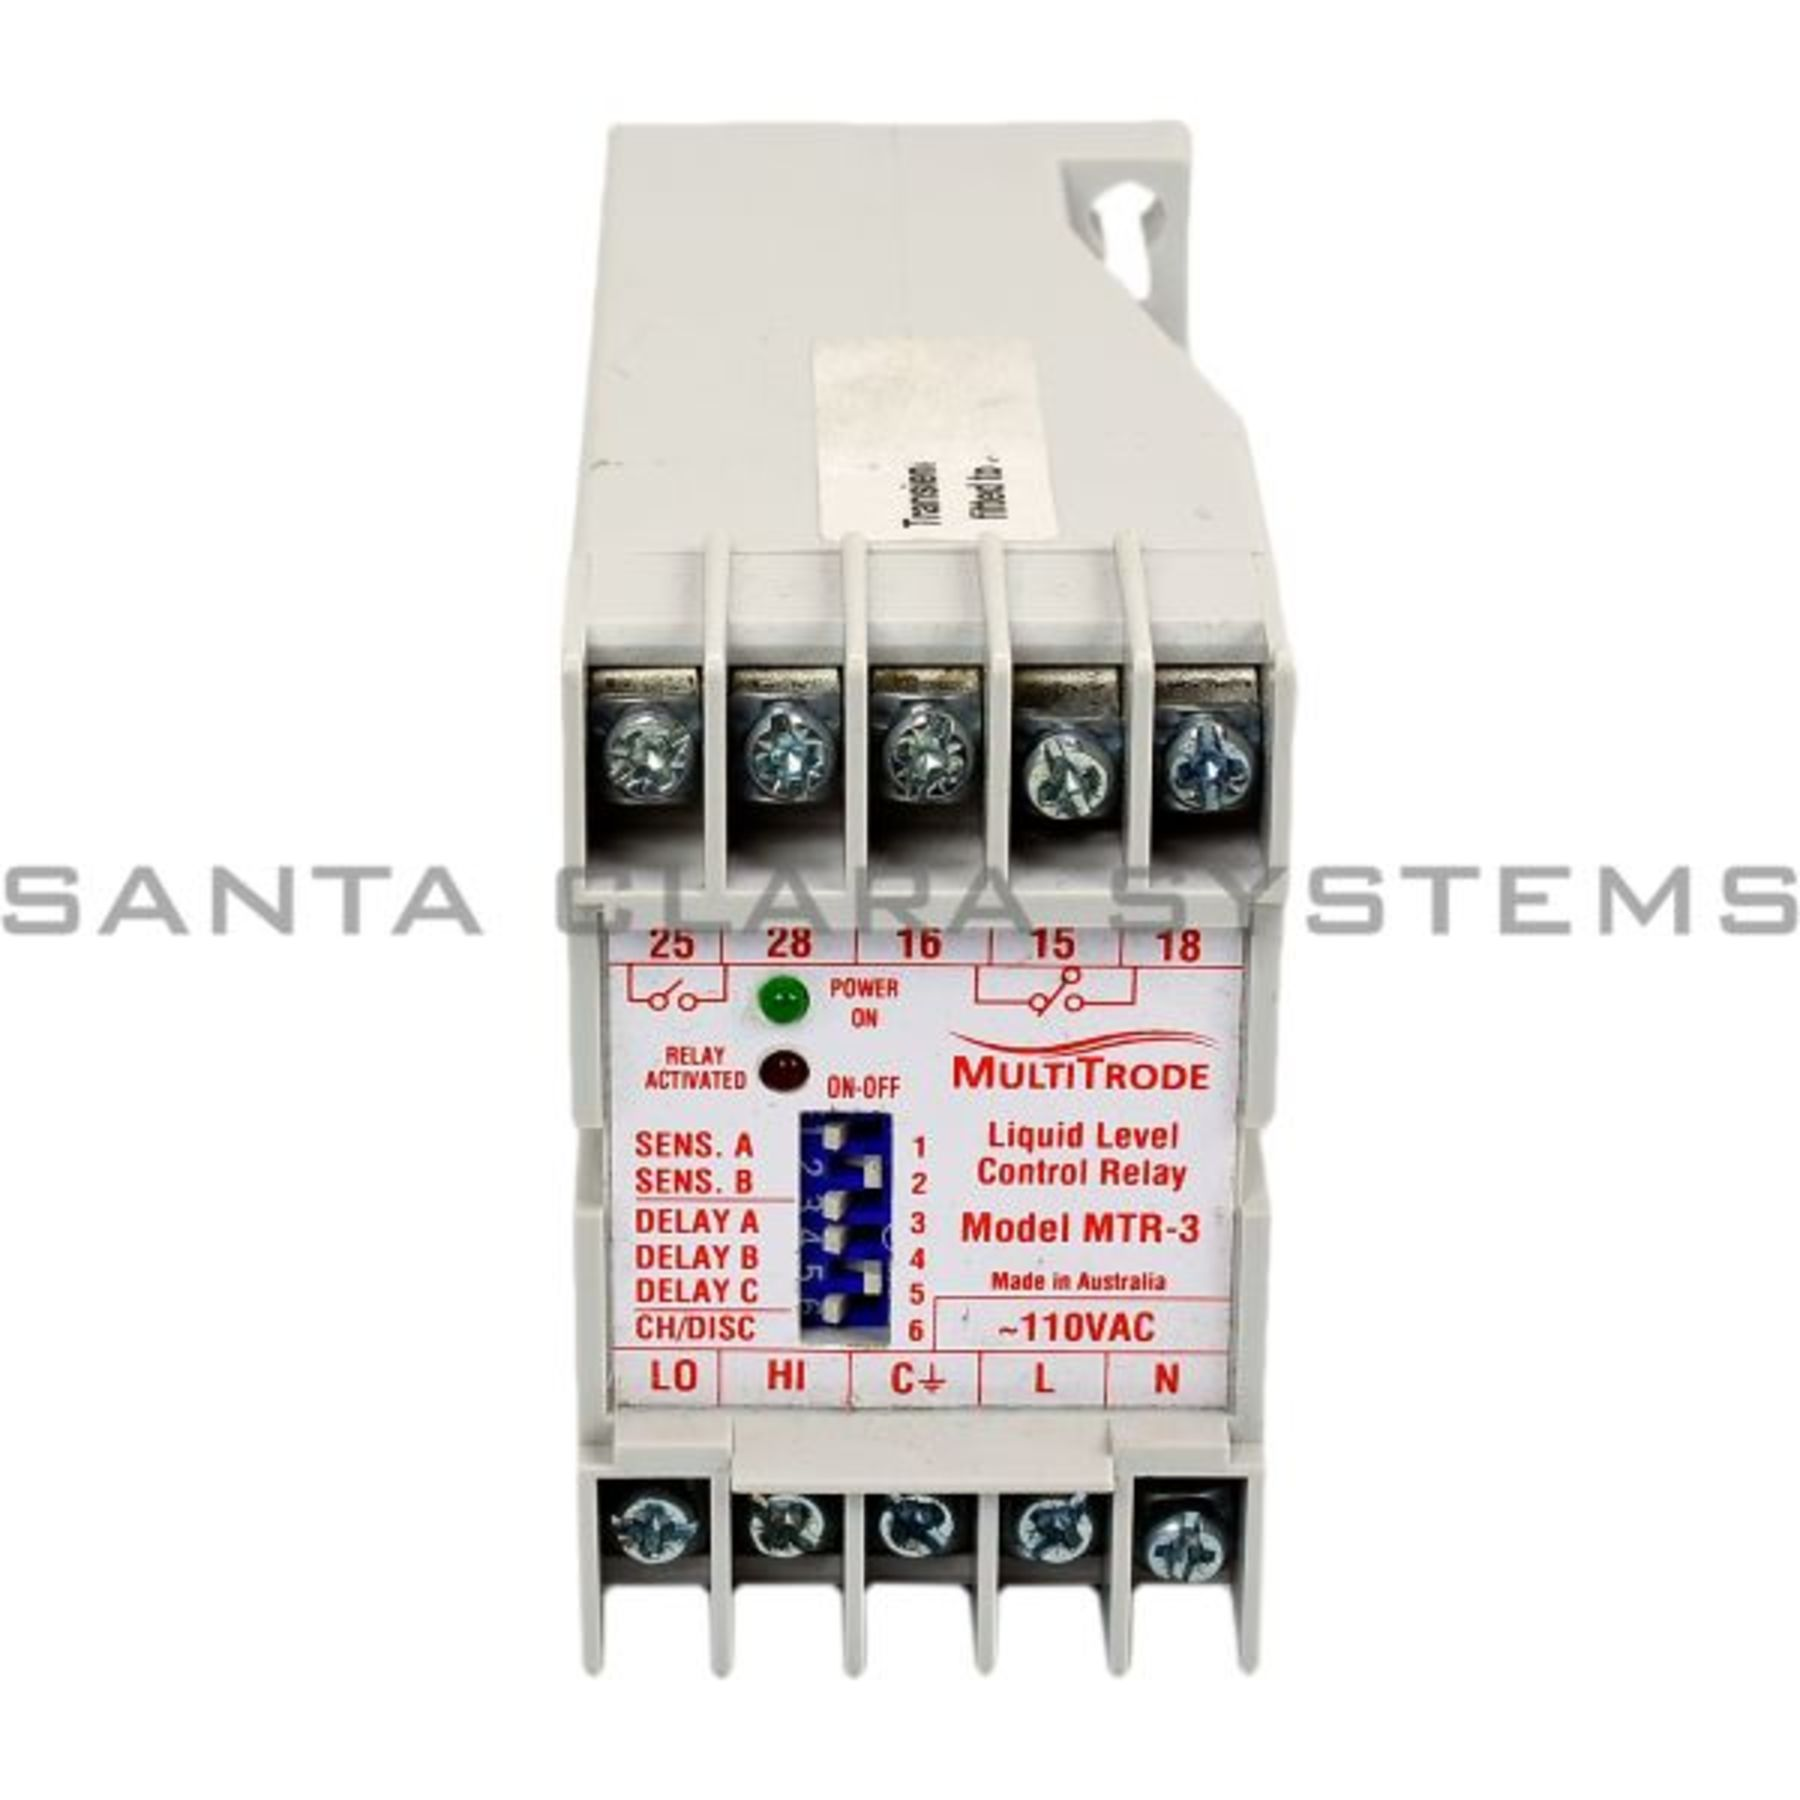 Mtr 3 Liquid Level Control Relay In Stock And Ready To Ship Santa Switch Multitrode Product Image